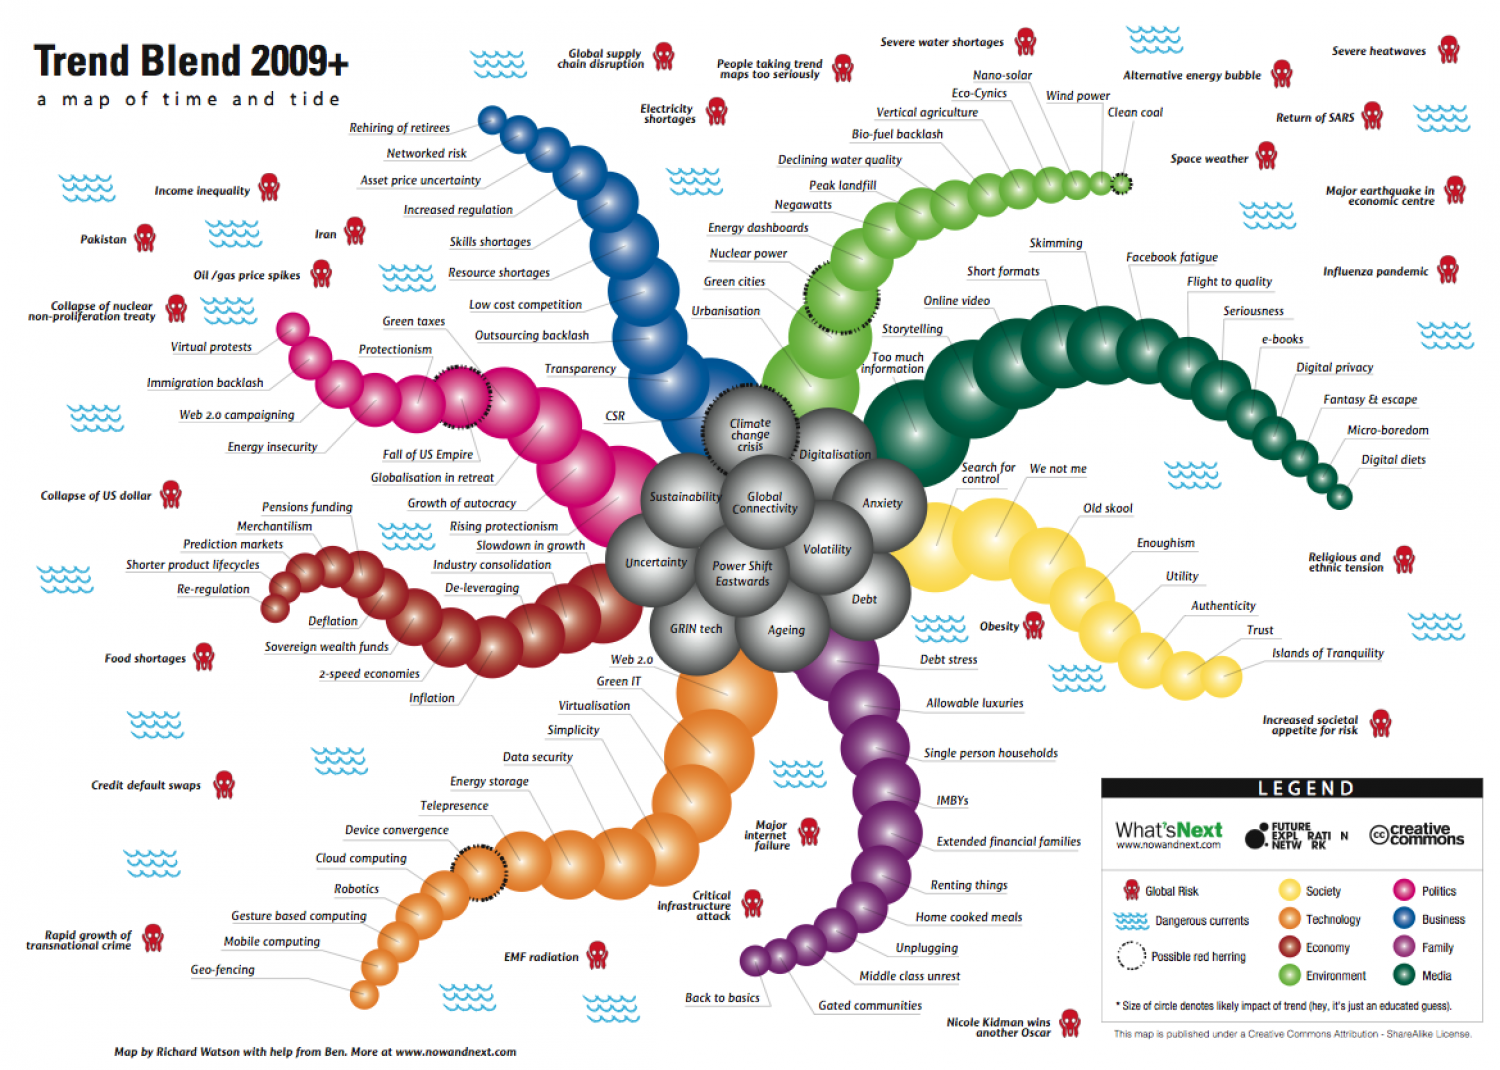 Trend Blend 2009 Infographic